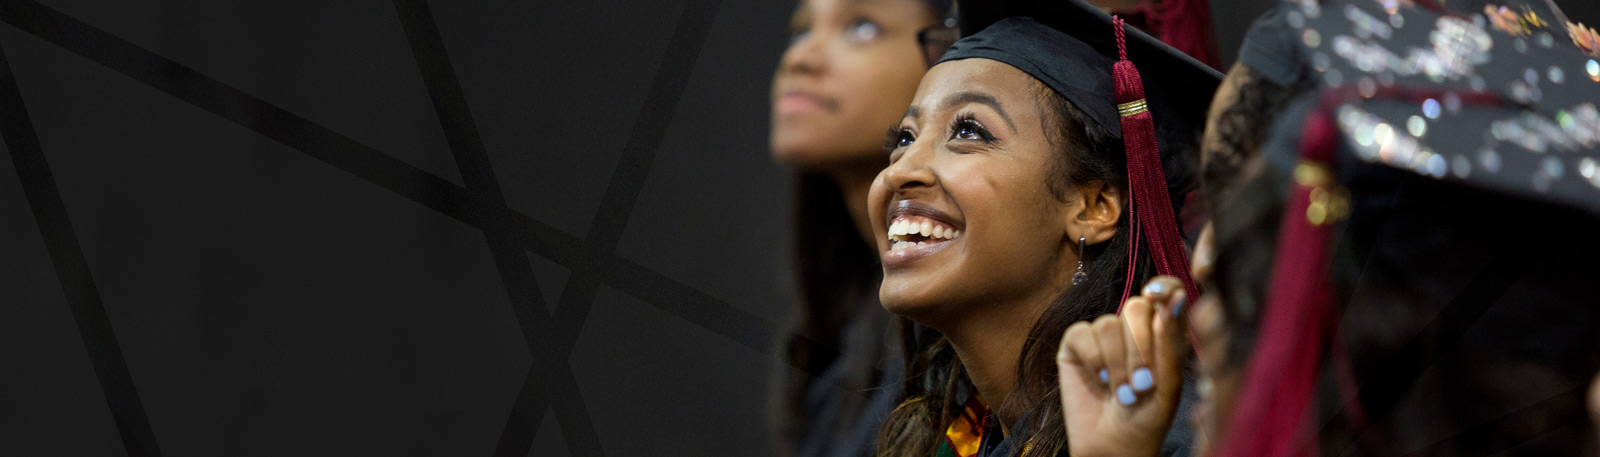 An Ohio State student smiles and looks up during Commencement.